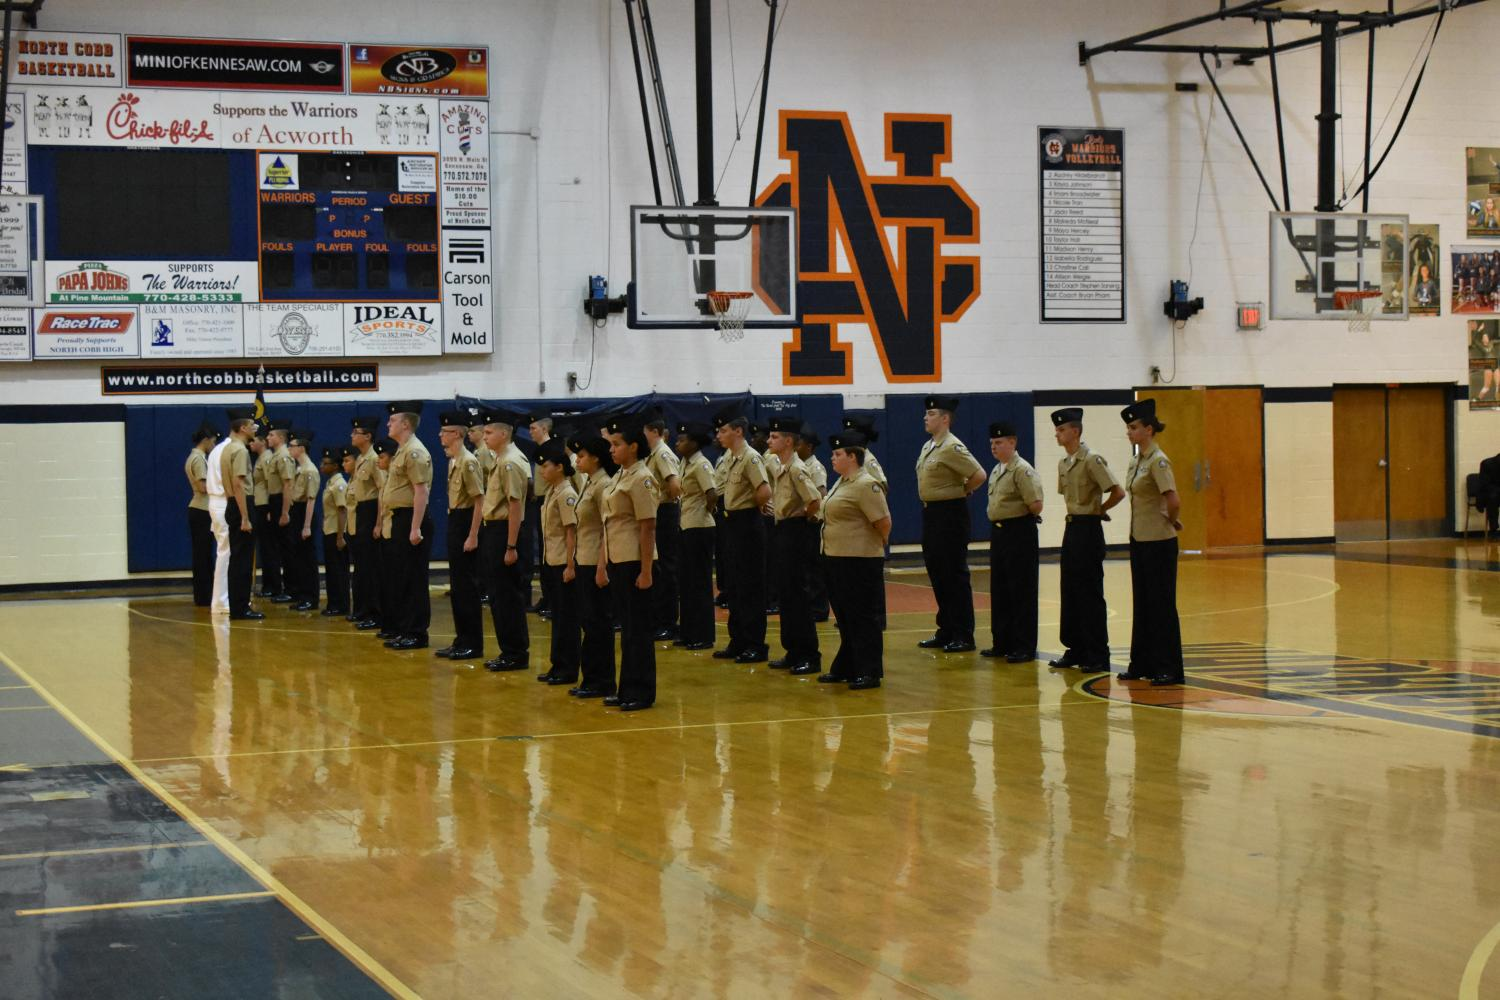 A portion of the NC unit stands at attention as they wait to receive a uniform inspection from the presiding officer. The NC band waits behind them to play during the unit's ceremony.